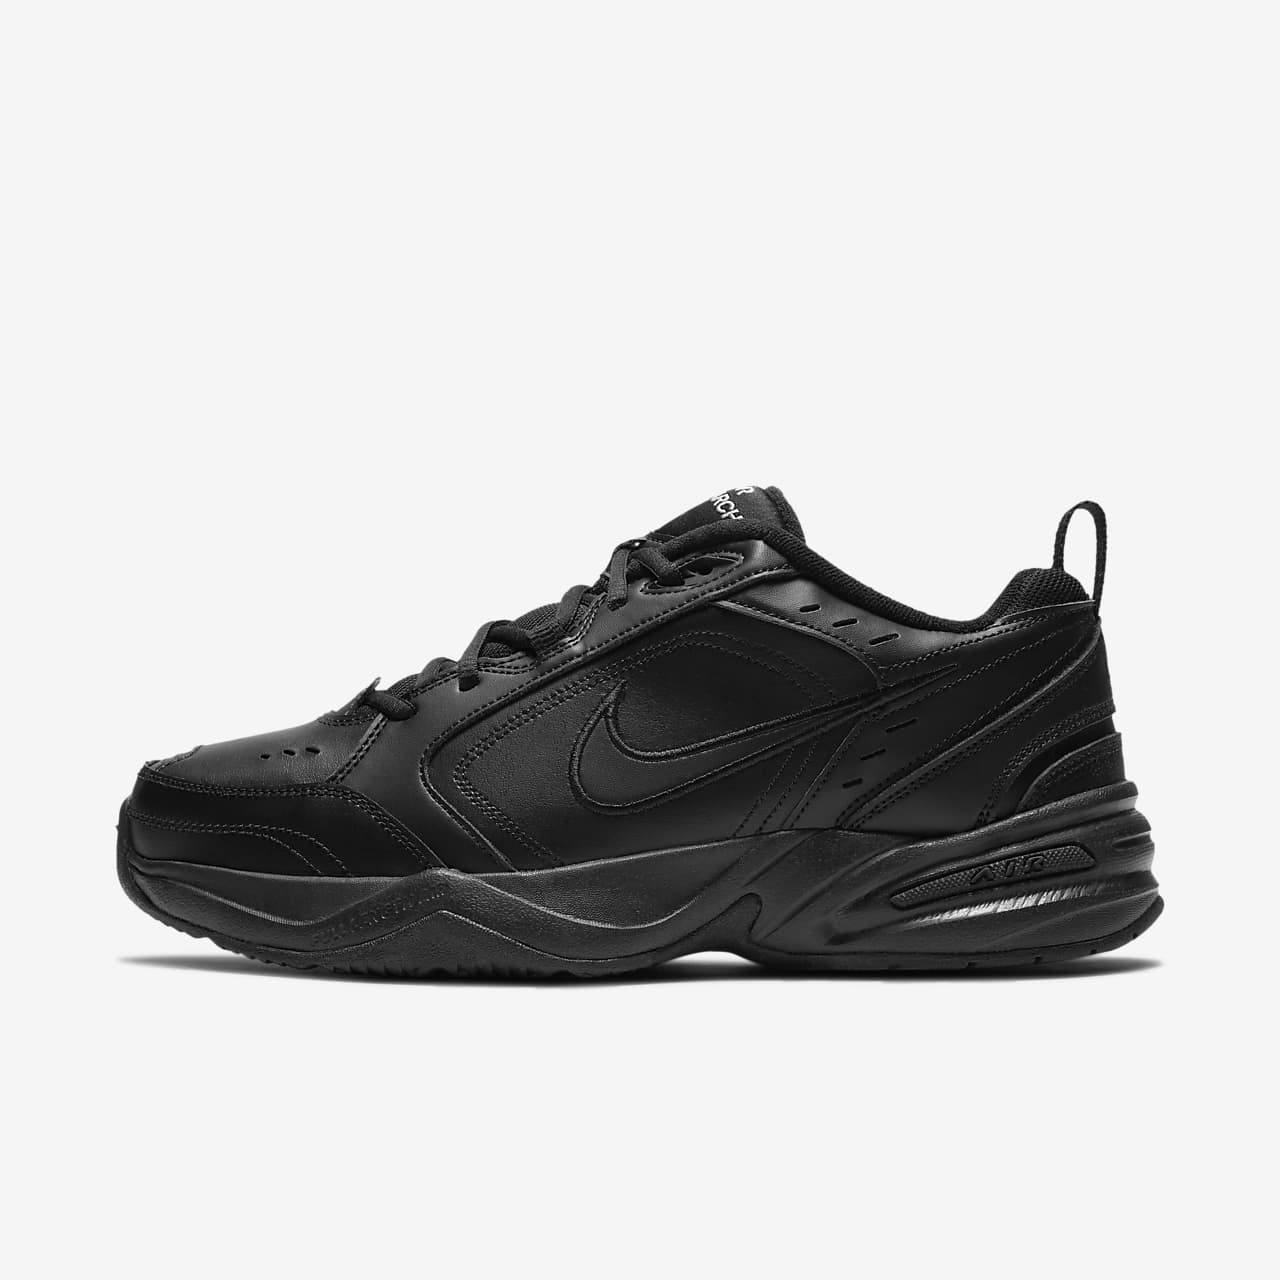 premium selection 4dcdd 80c3b Nike Air Monarch IV